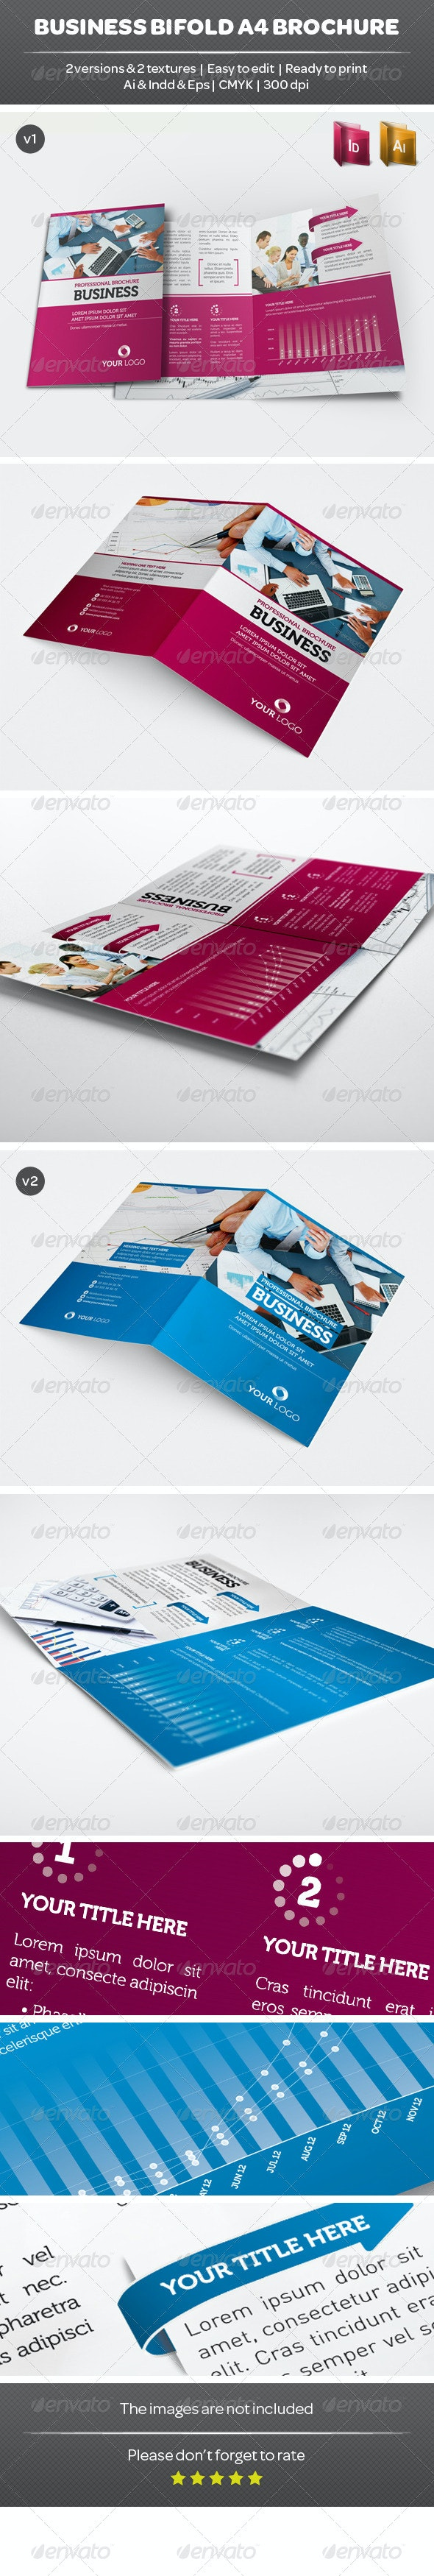 Business Bifold A4 Brochure - Corporate Brochures